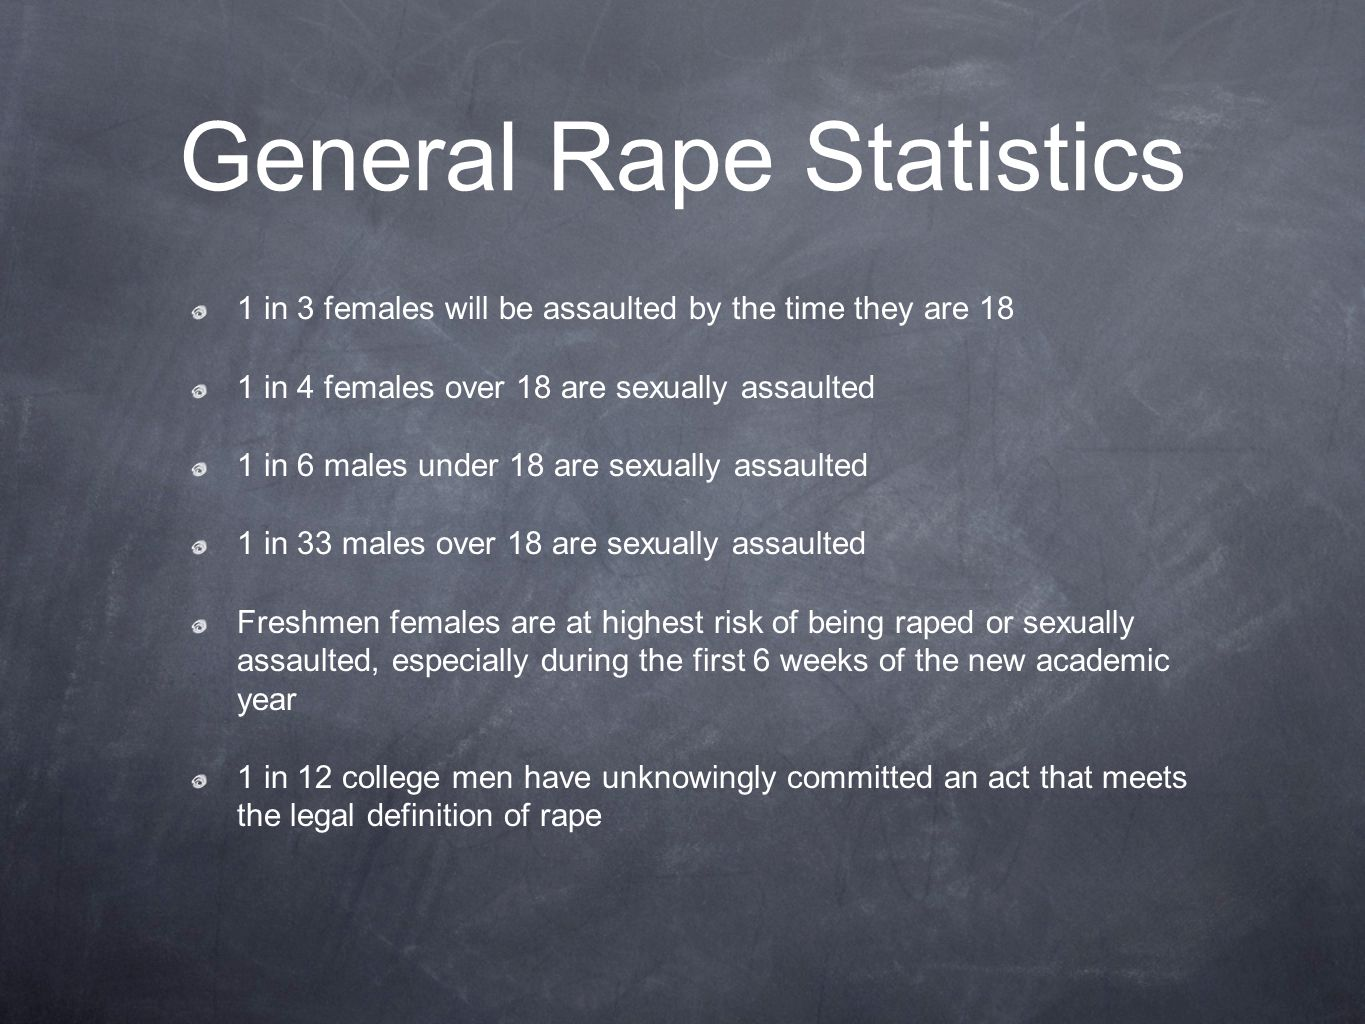 General Rape Statistics 1 in 3 females will be assaulted by the time they are 18 1 in 4 females over 18 are sexually assaulted 1 in 6 males under 18 are sexually assaulted 1 in 33 males over 18 are sexually assaulted Freshmen females are at highest risk of being raped or sexually assaulted, especially during the first 6 weeks of the new academic year 1 in 12 college men have unknowingly committed an act that meets the legal definition of rape